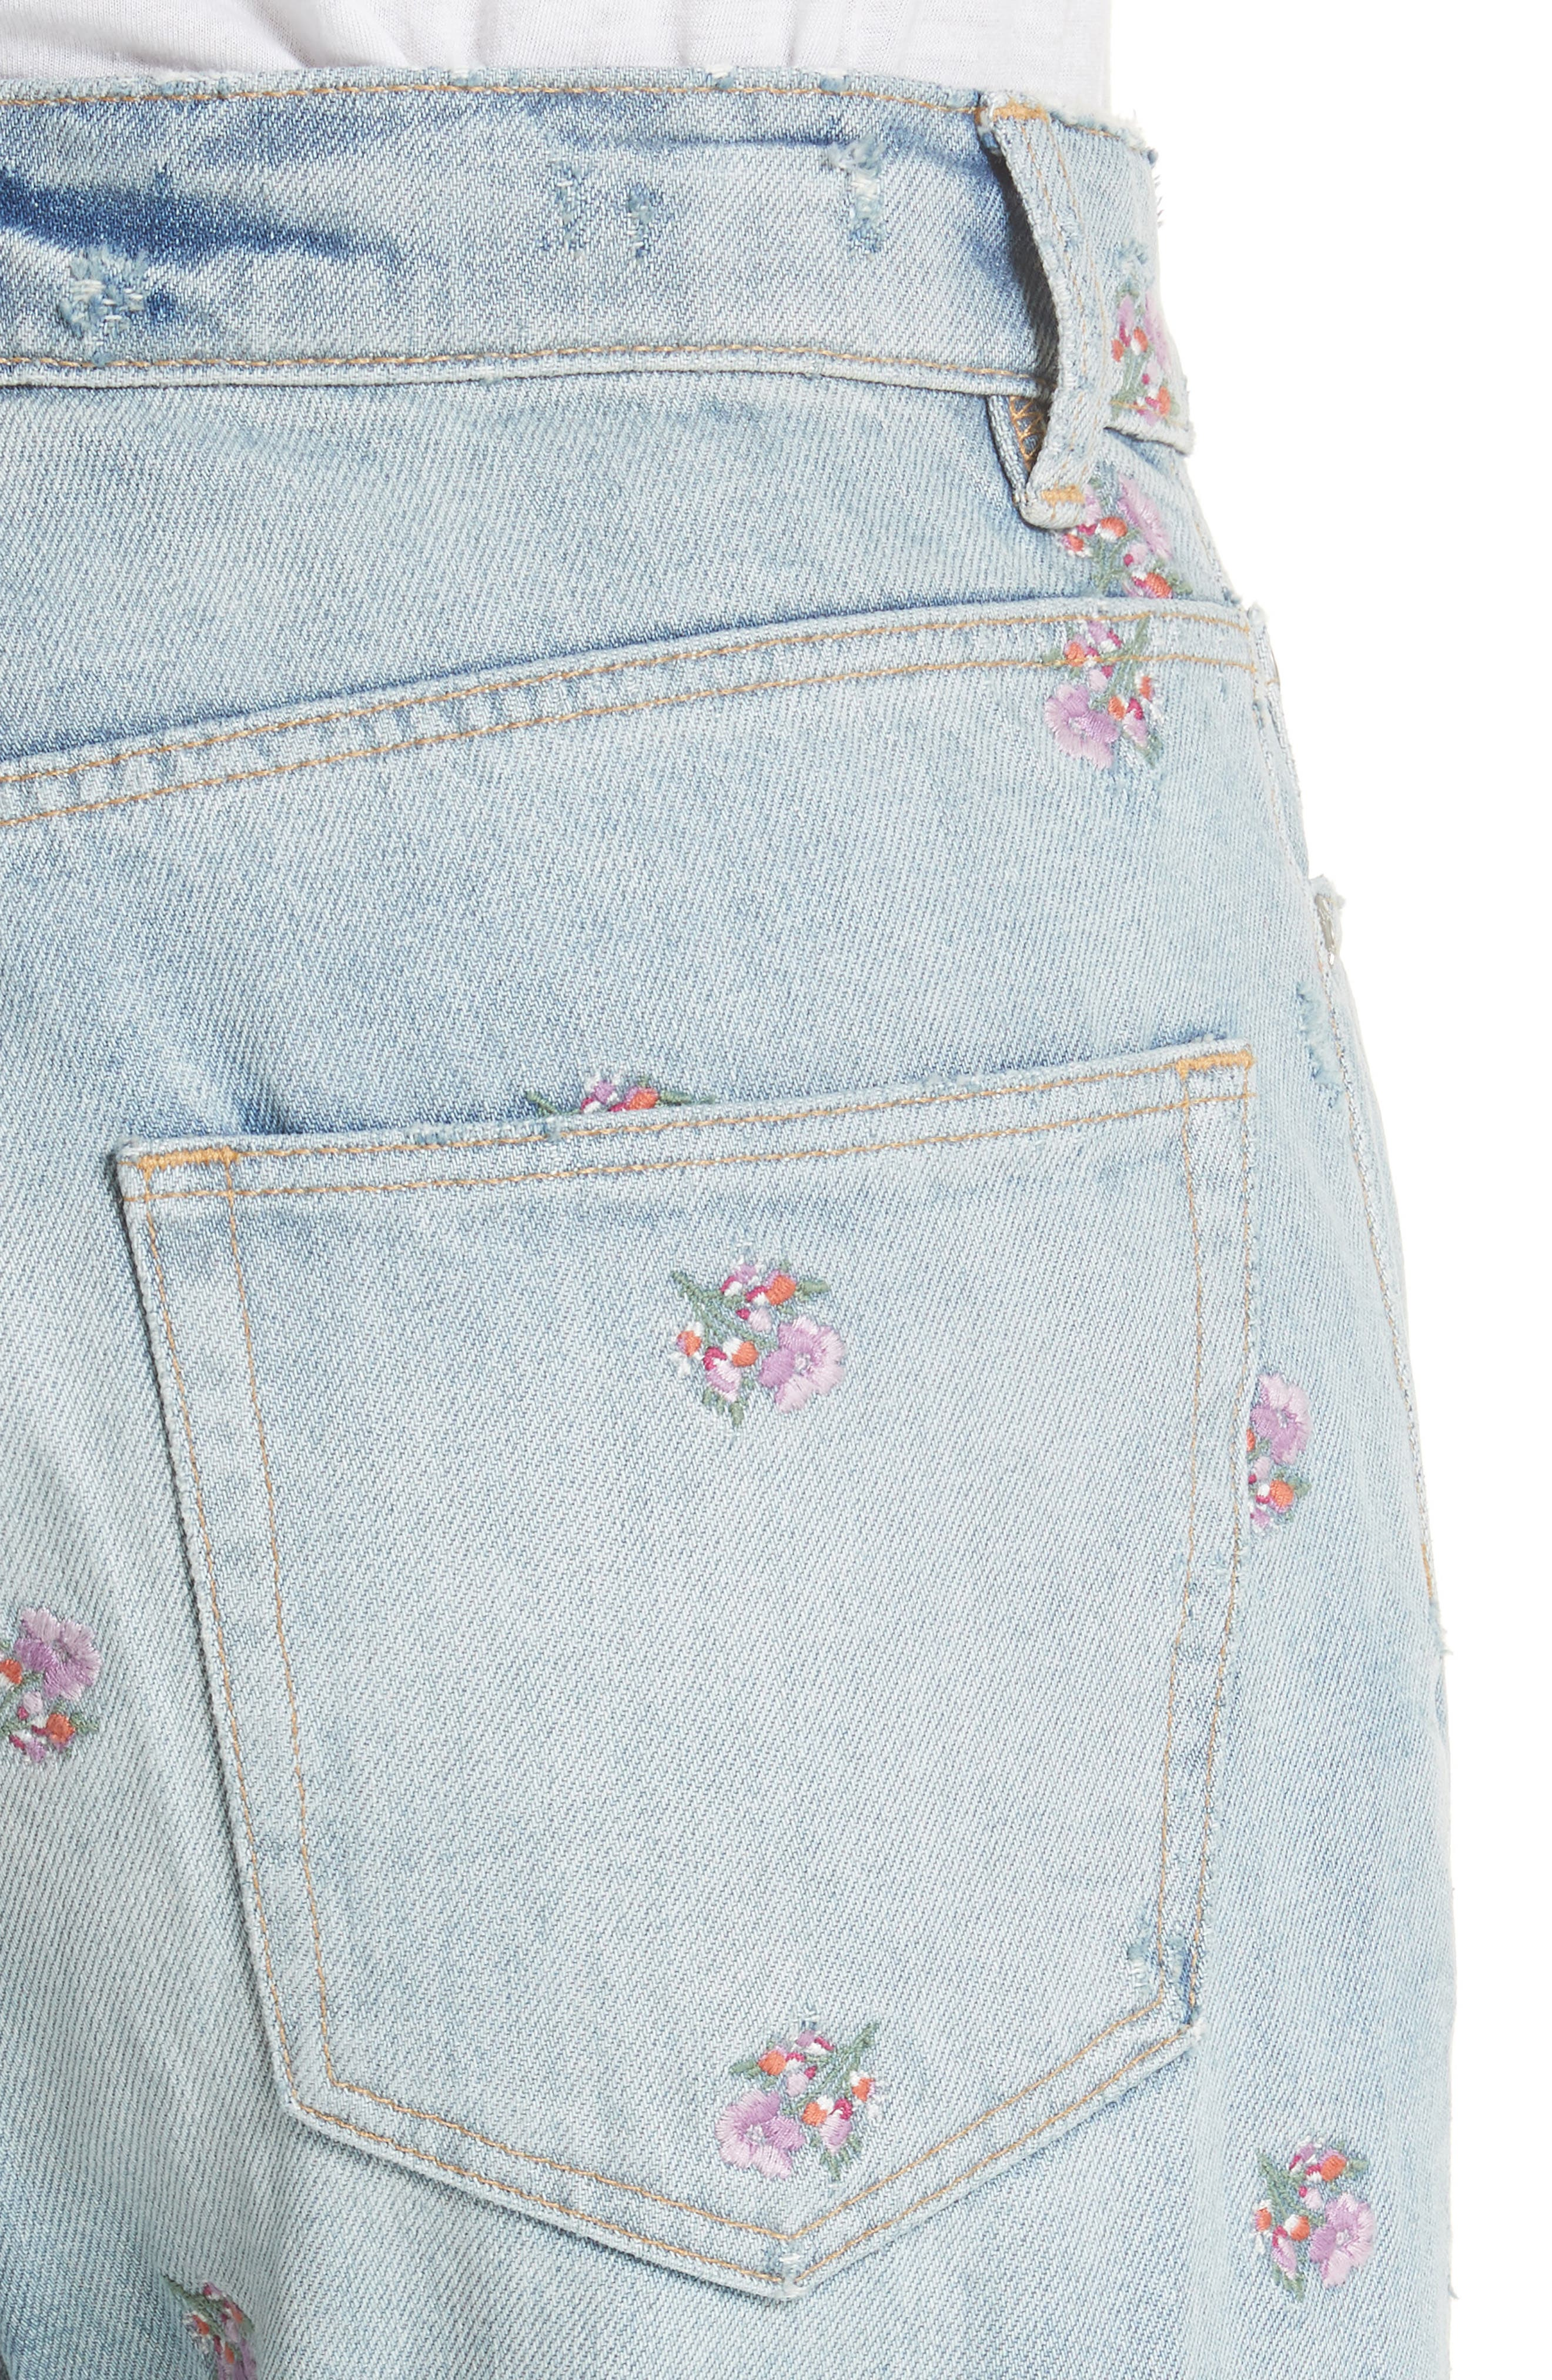 Beatrice Embroidered Crop Straight Leg Jeans,                             Alternate thumbnail 4, color,                             459